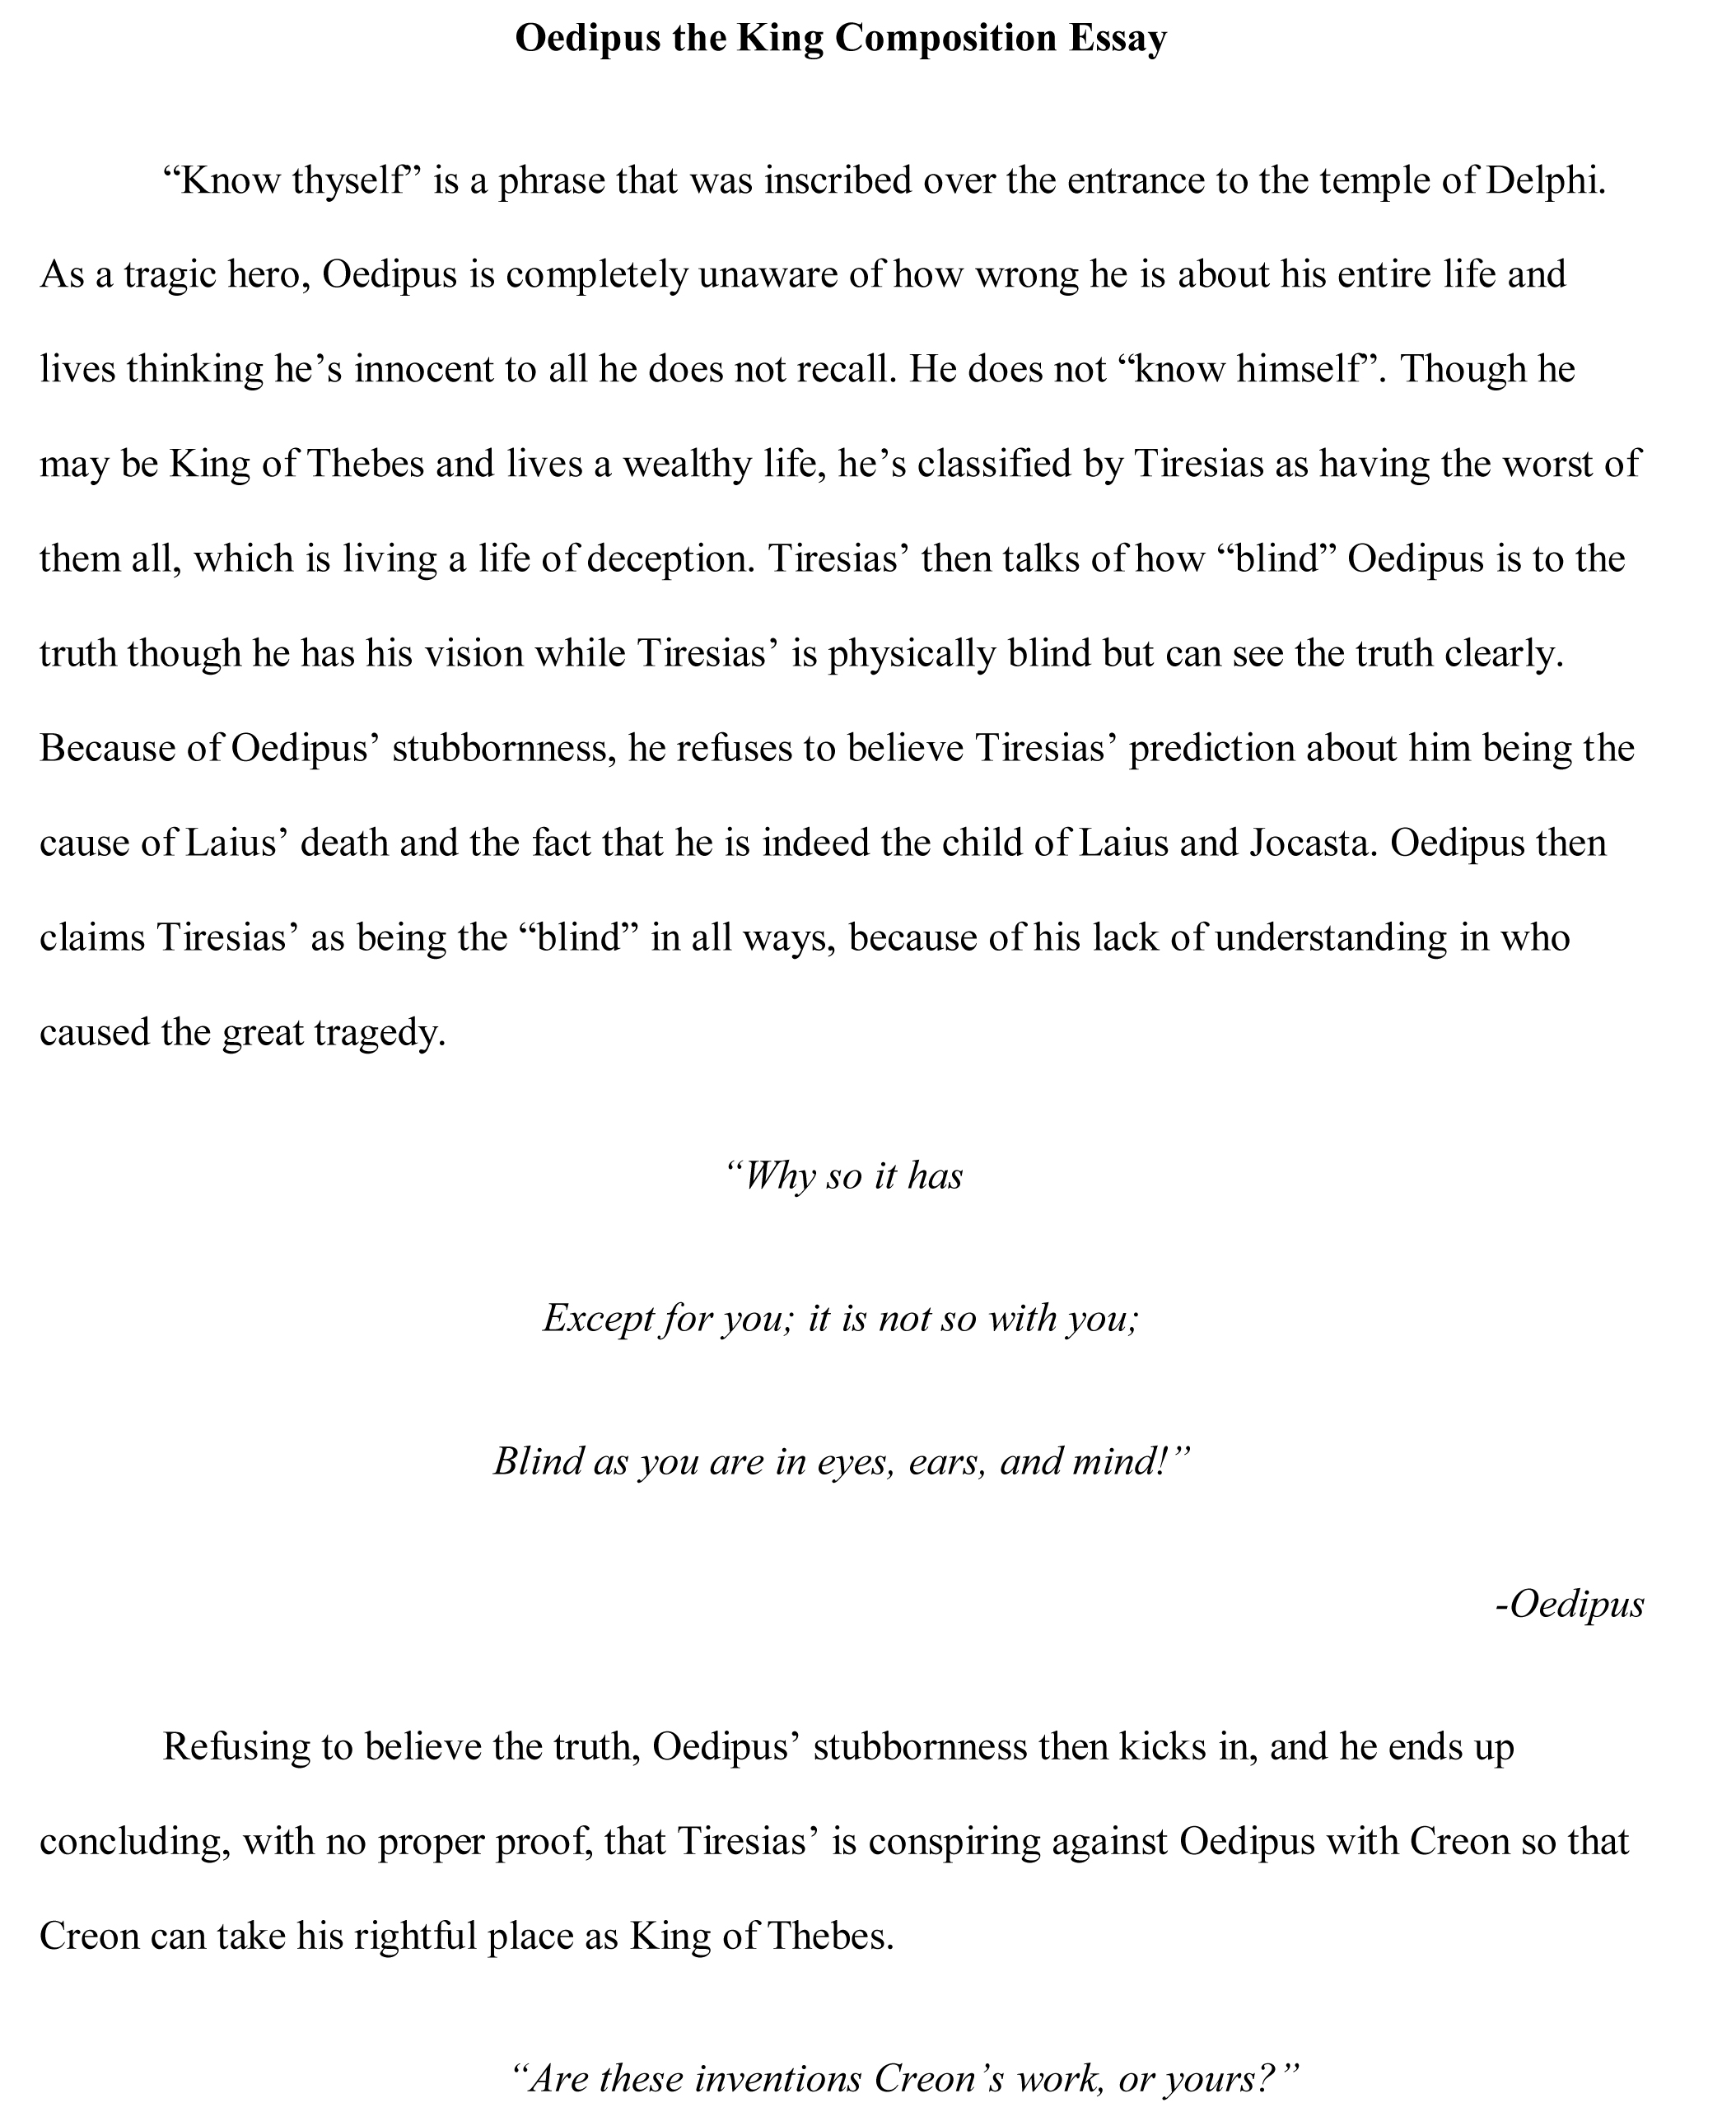 011 Oedipus Essay Free Sample Good Hooks For Essayss Excellent Essays Examples Persuasive Narrative Full